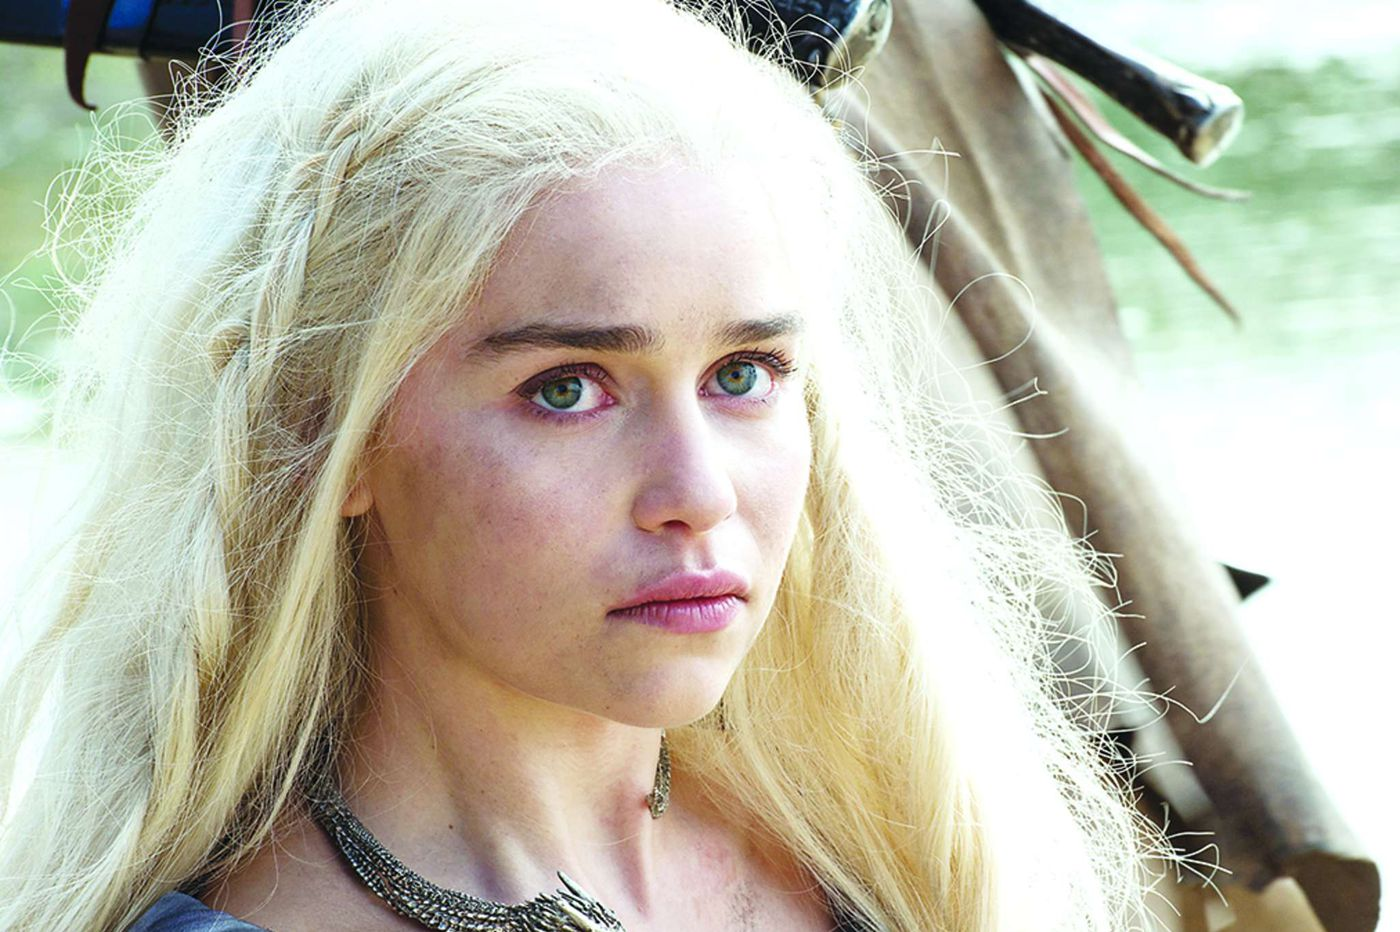 'Game of Thrones' actress writes about surviving two brain aneurysms